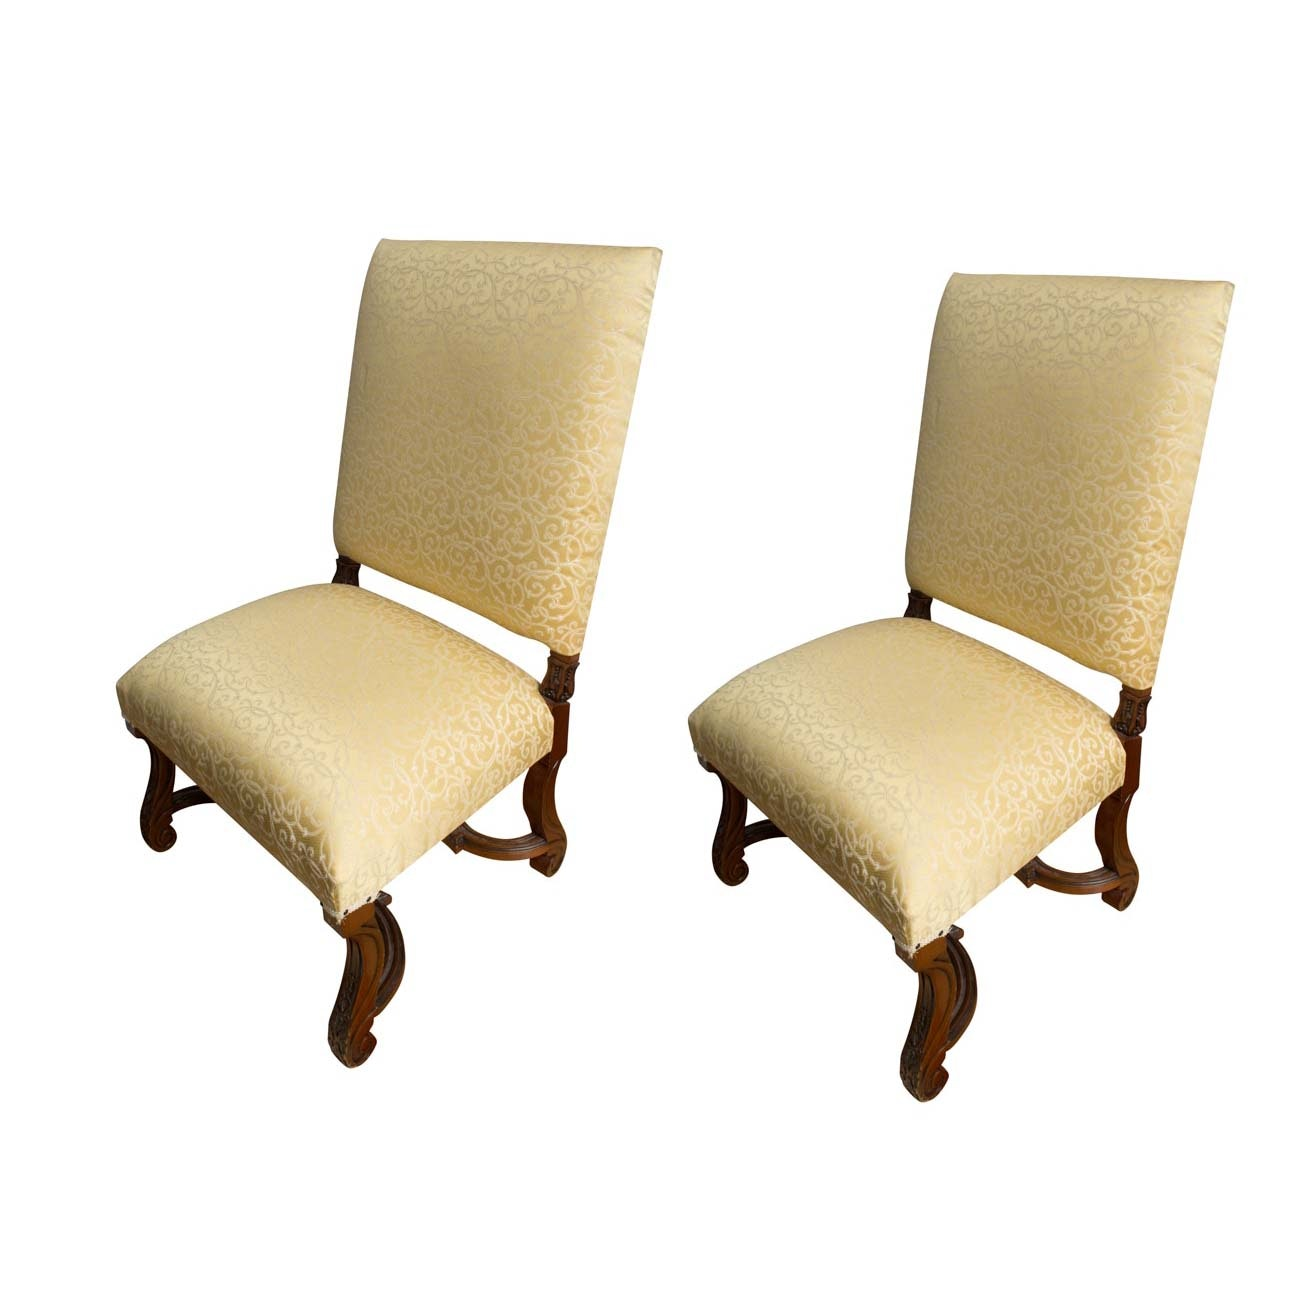 Pair of Renaissance Revival Style Upholstered Chairs